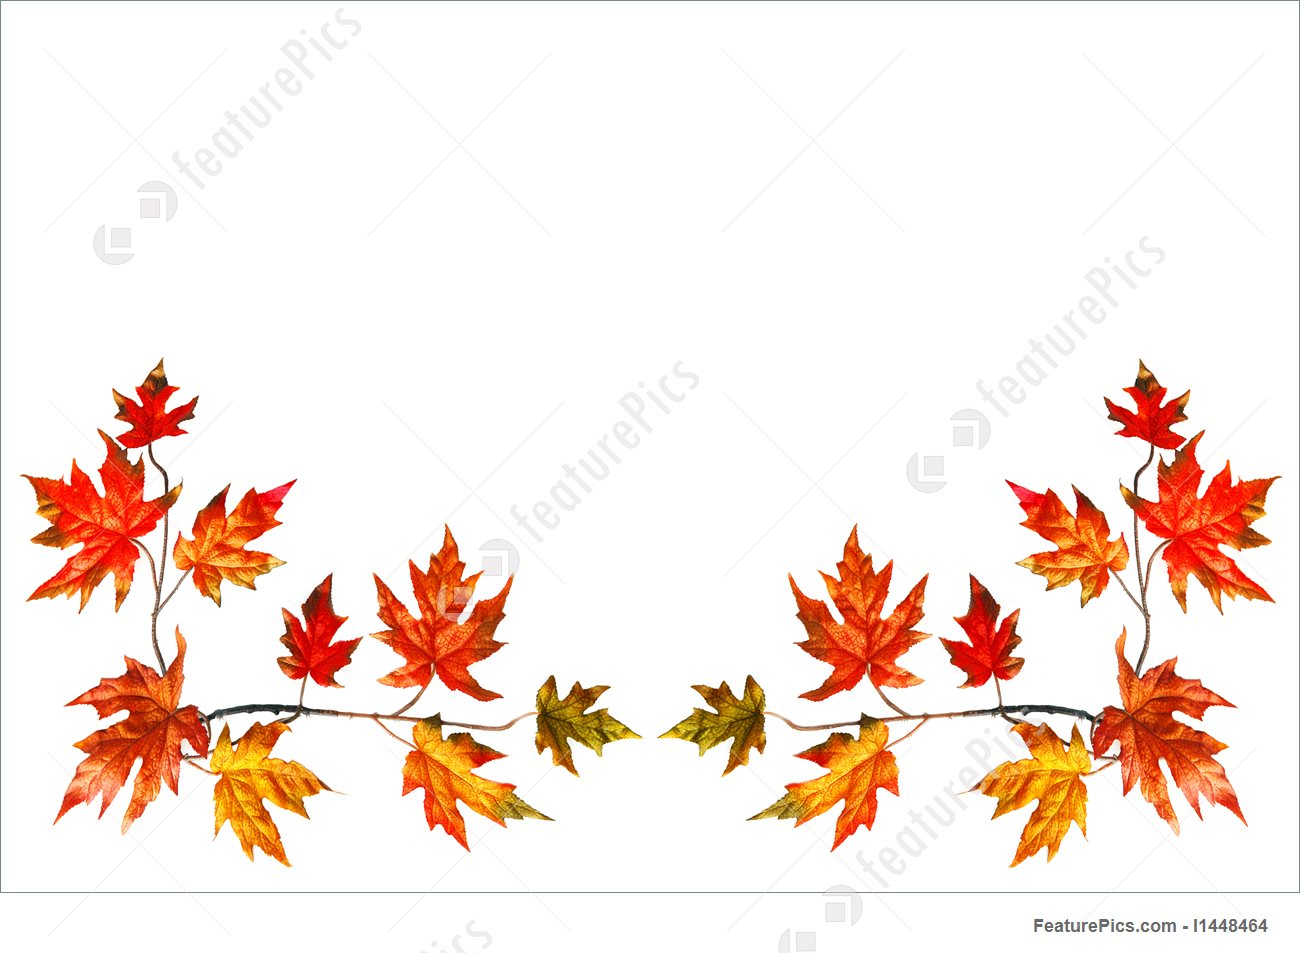 1300x953 Autumn Frame Stock Image I1448464